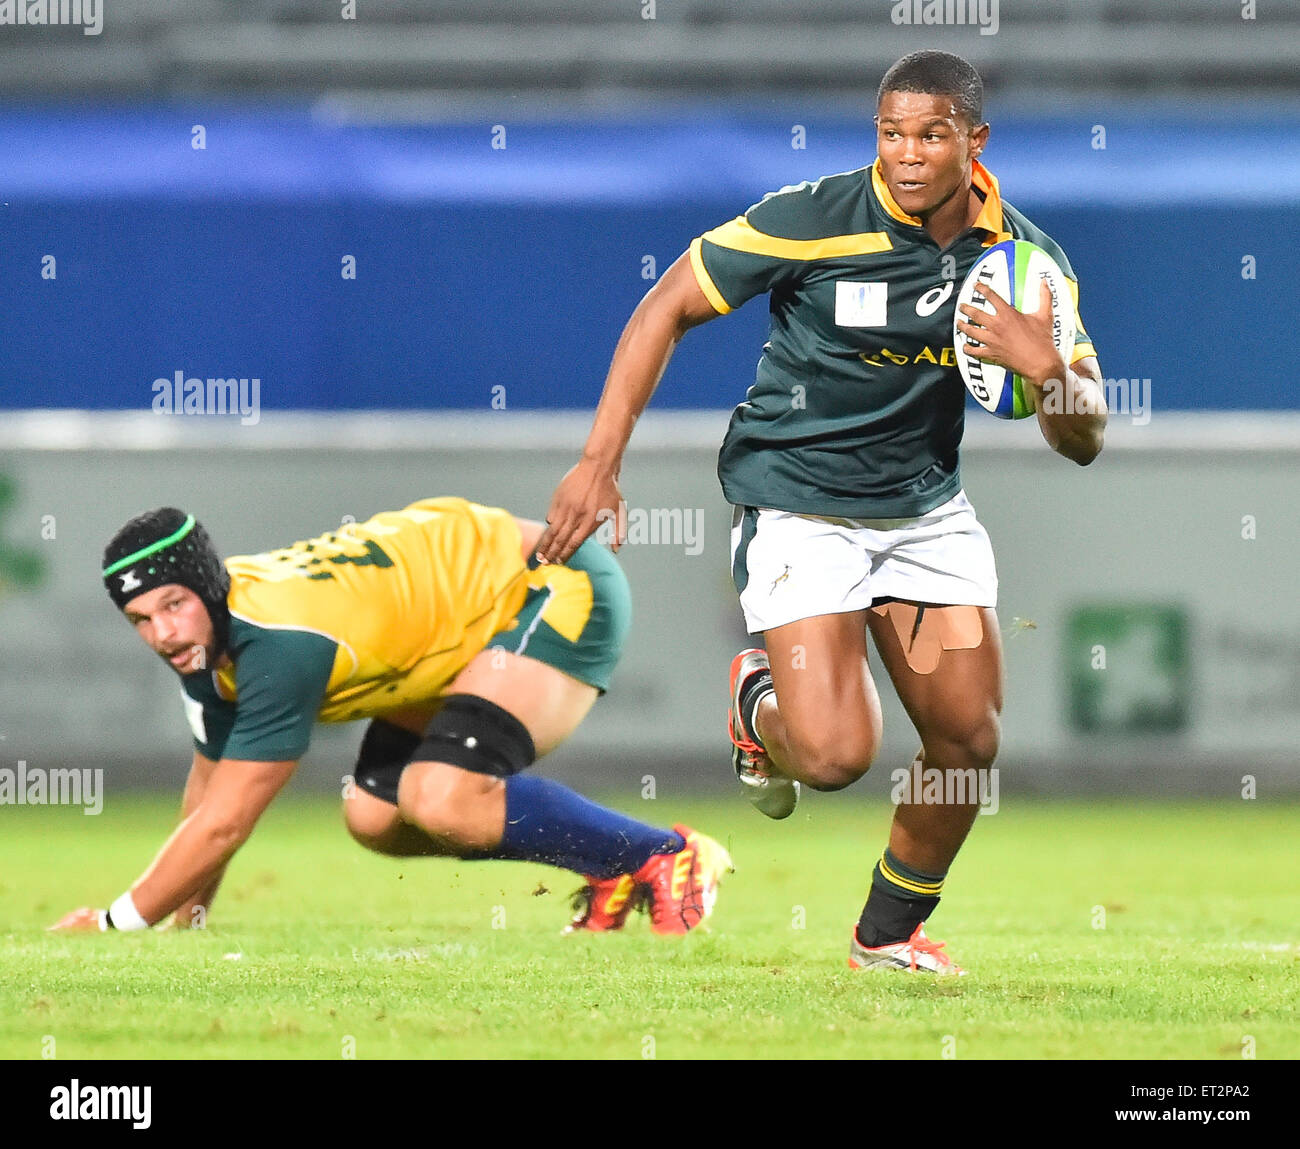 South Africa versus Australia at the World Rugby Under 20 Championship in 2015 - Stock Image